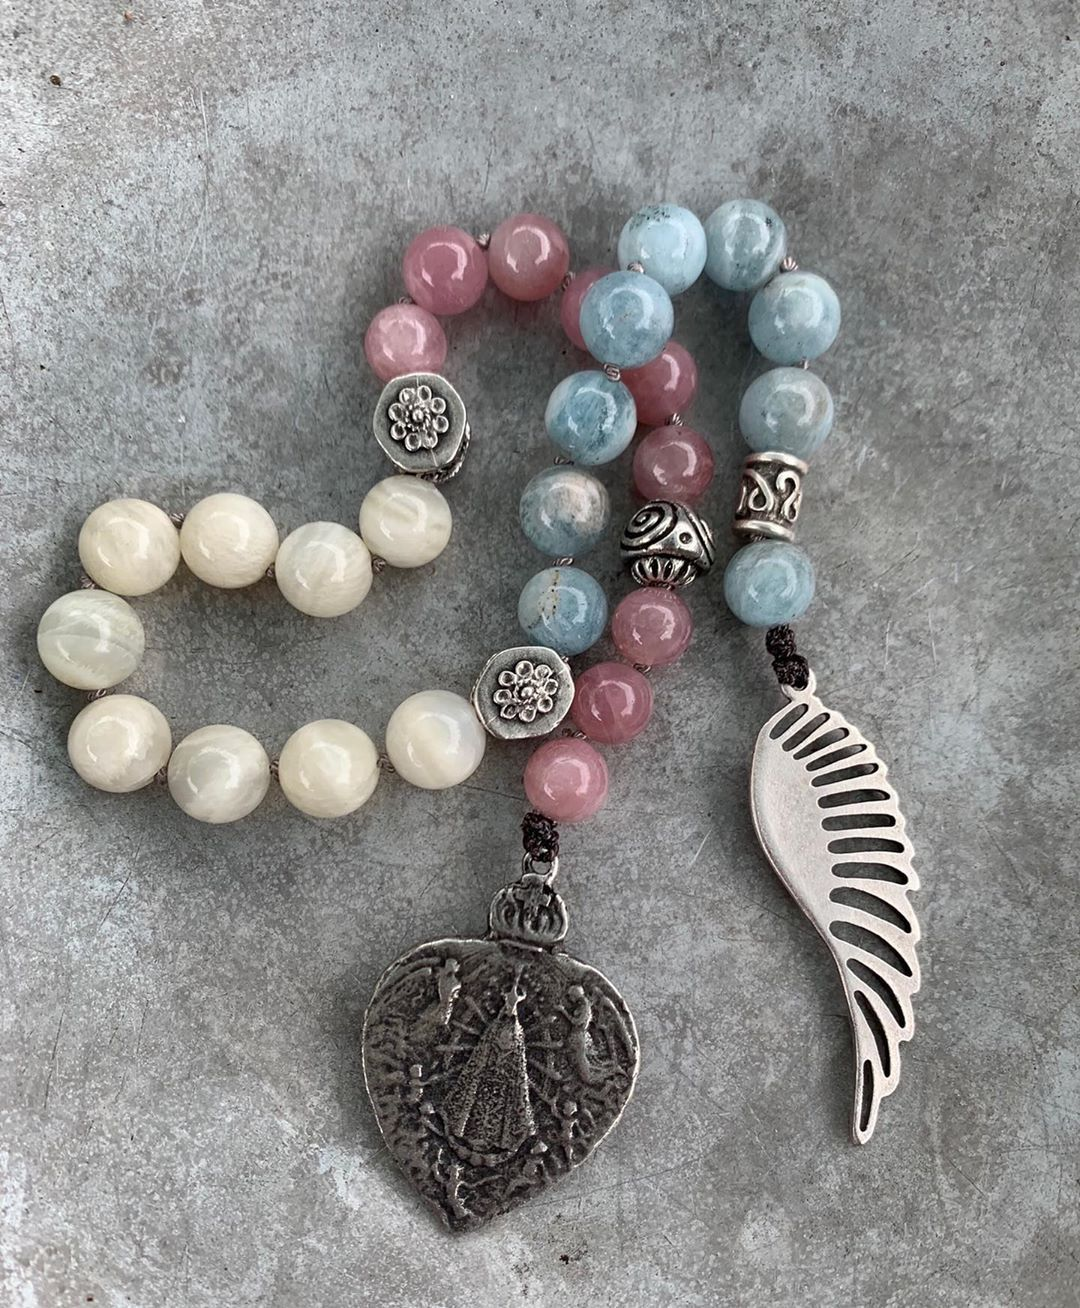 Deep Rooted Woman on Instagram 27 Bead Hand Mala to Activate and Embody Sel Deep Rooted Woman on Instagram 27 Bead Hand Mala to Activate and Embody Self Compassion  Dee